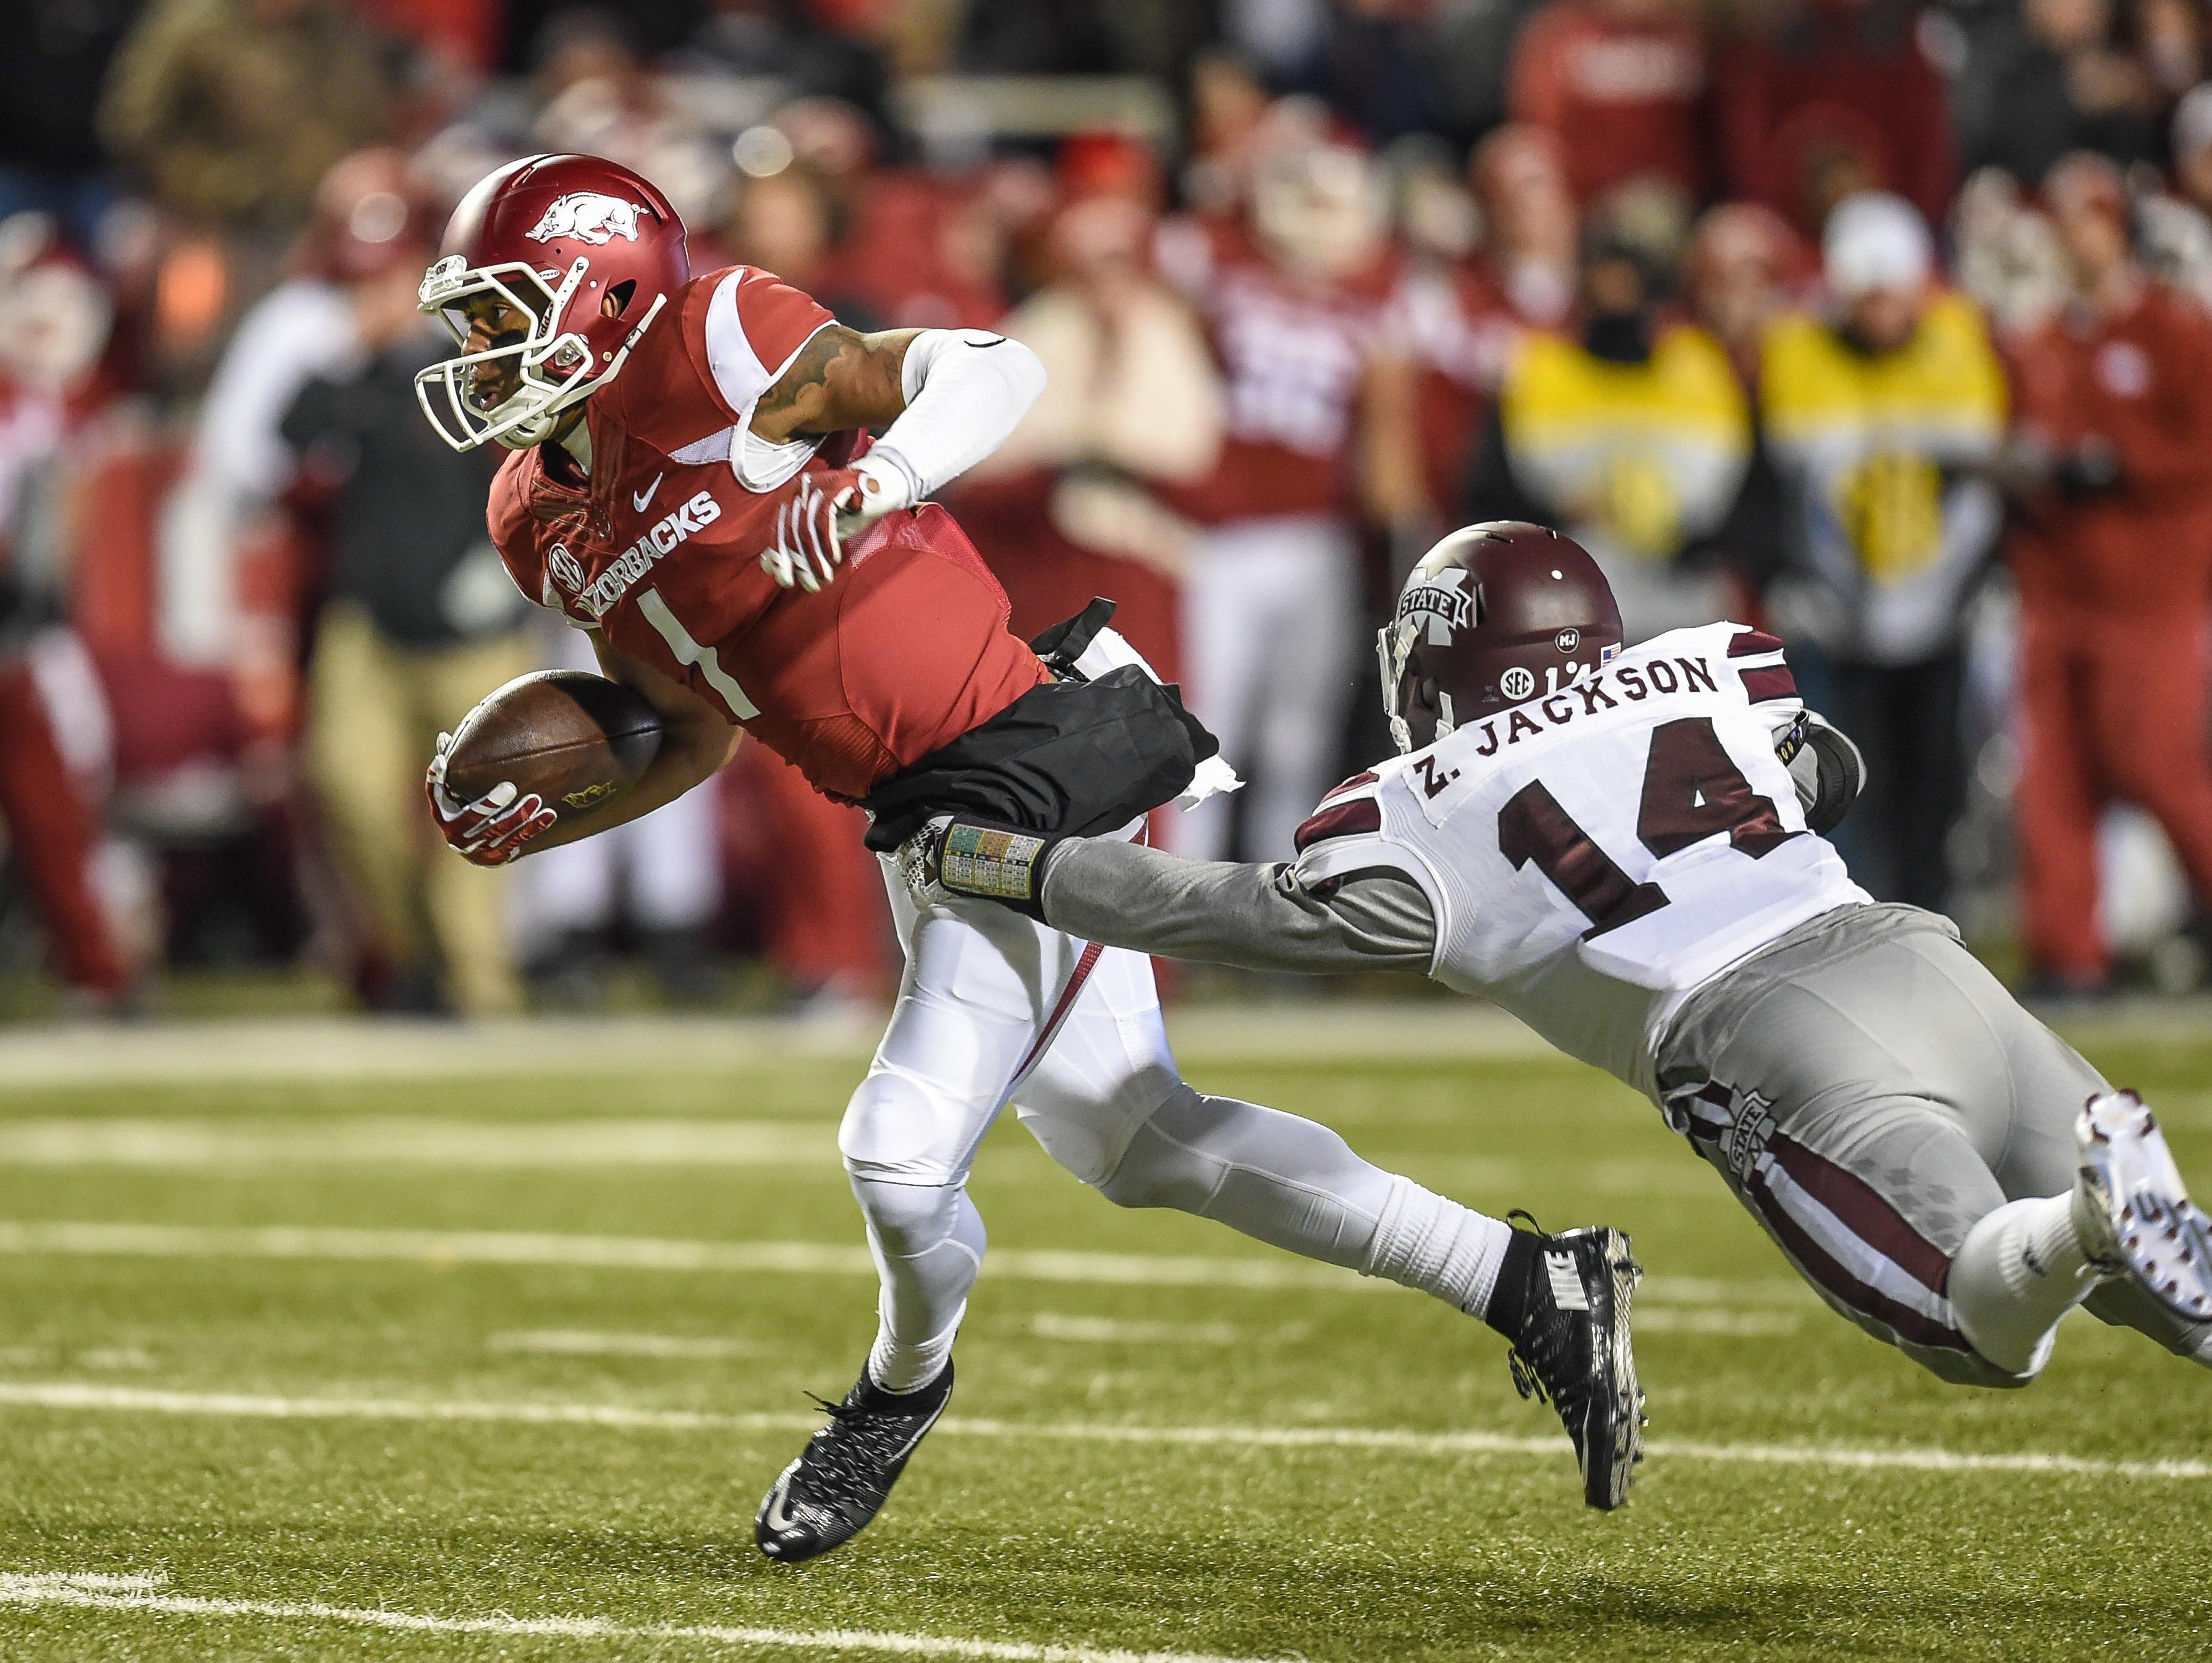 Arkansas wide receiver Jared Cornelius (1) with a pass reception during a game between Arkansas and Mississippi State on Saturday night in Fayetteville.